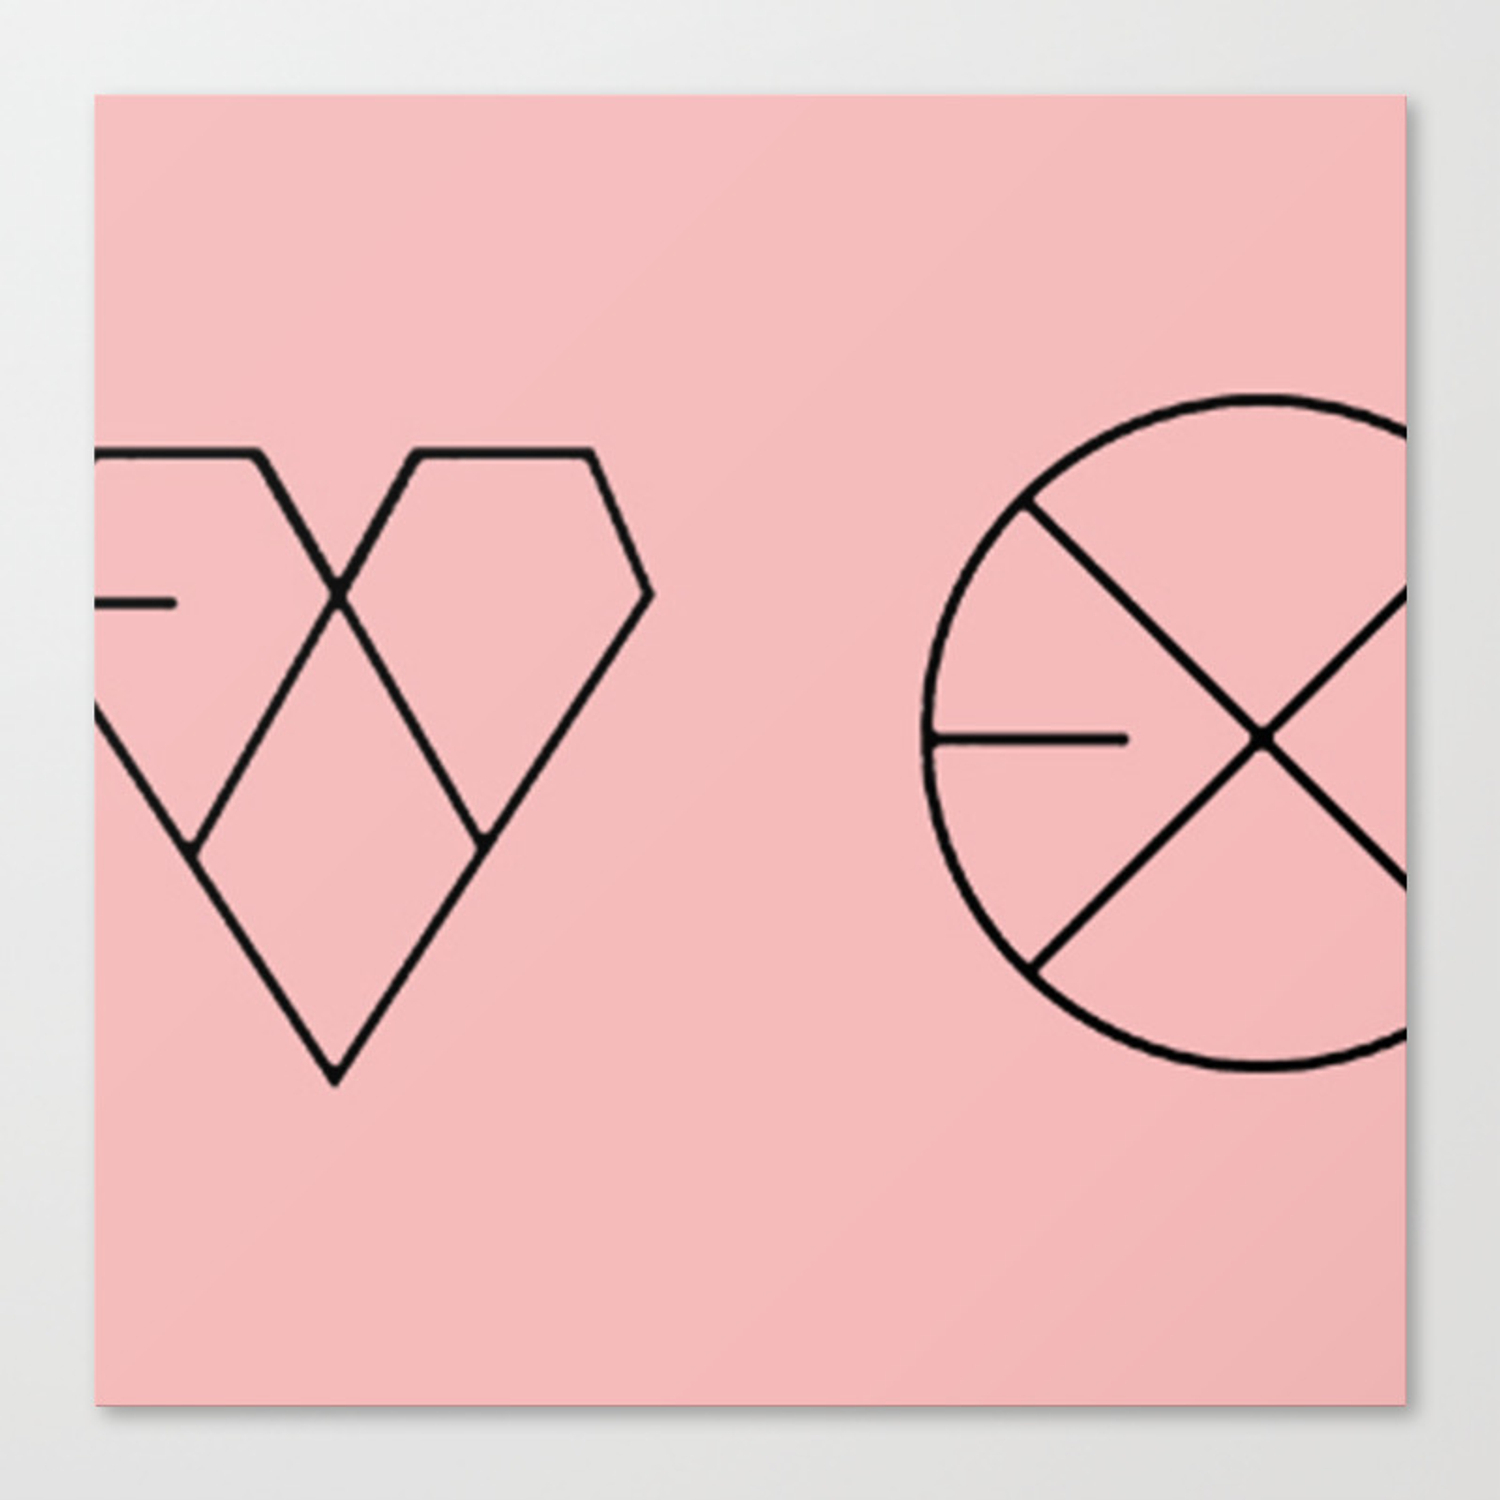 exo logos stretched canvas